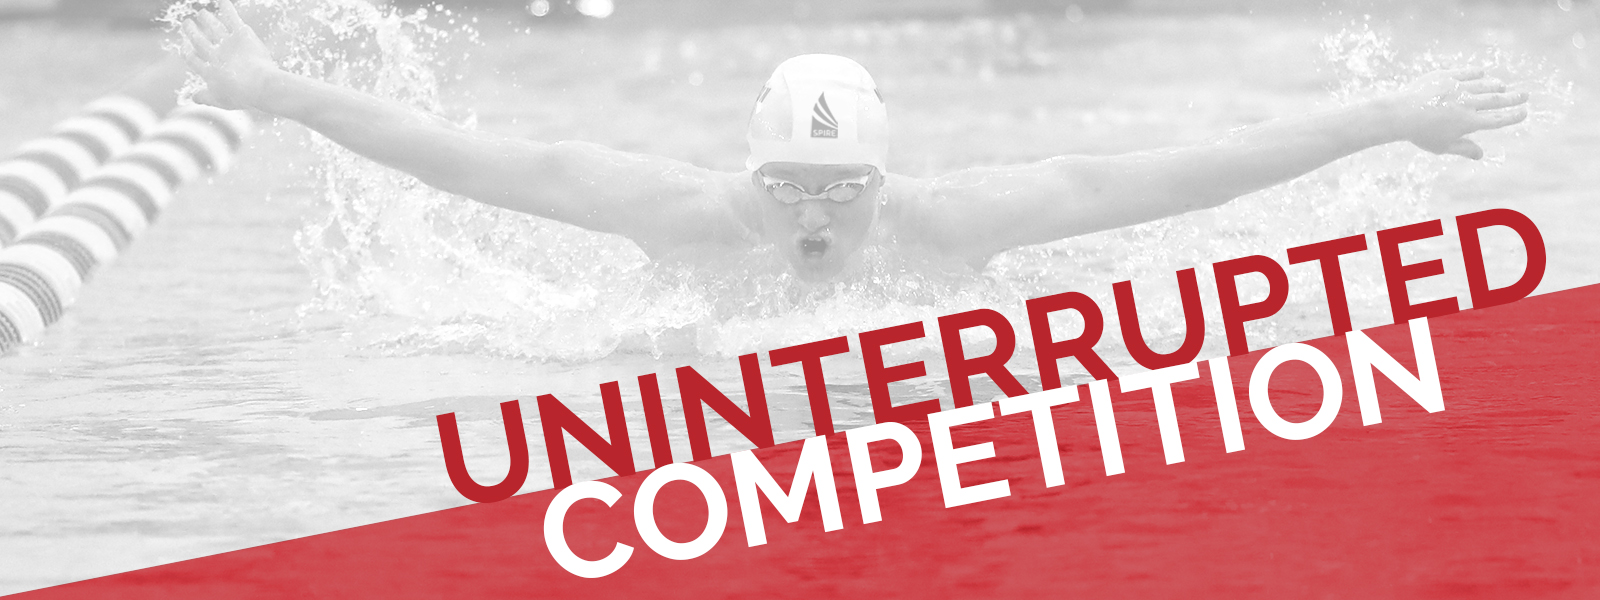 SPIRE Commits To Uninterrupted Competition With College Time Out Program